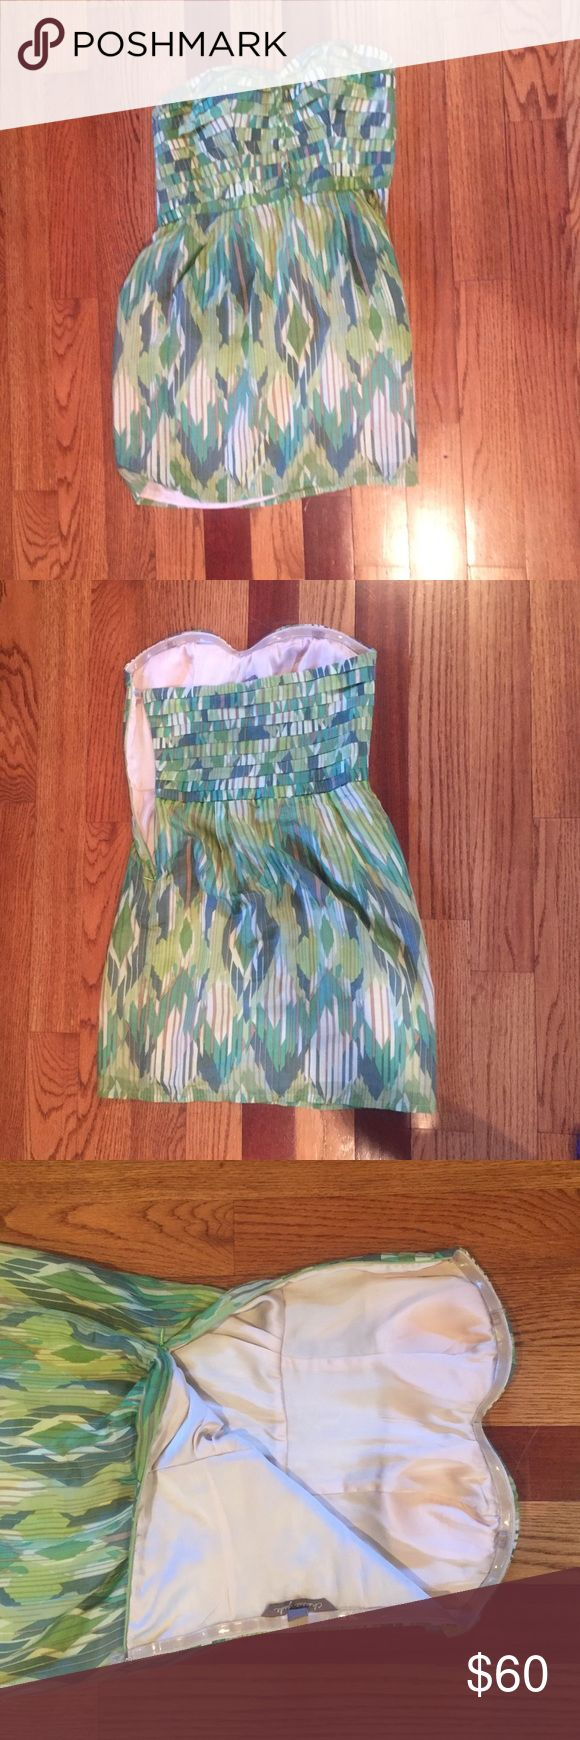 Green patterned strapless dress Cute and almost new green print dress. No trades! I'm open to negotiations and questions!! Charlie jade dress Urban Outfitters Dresses Strapless